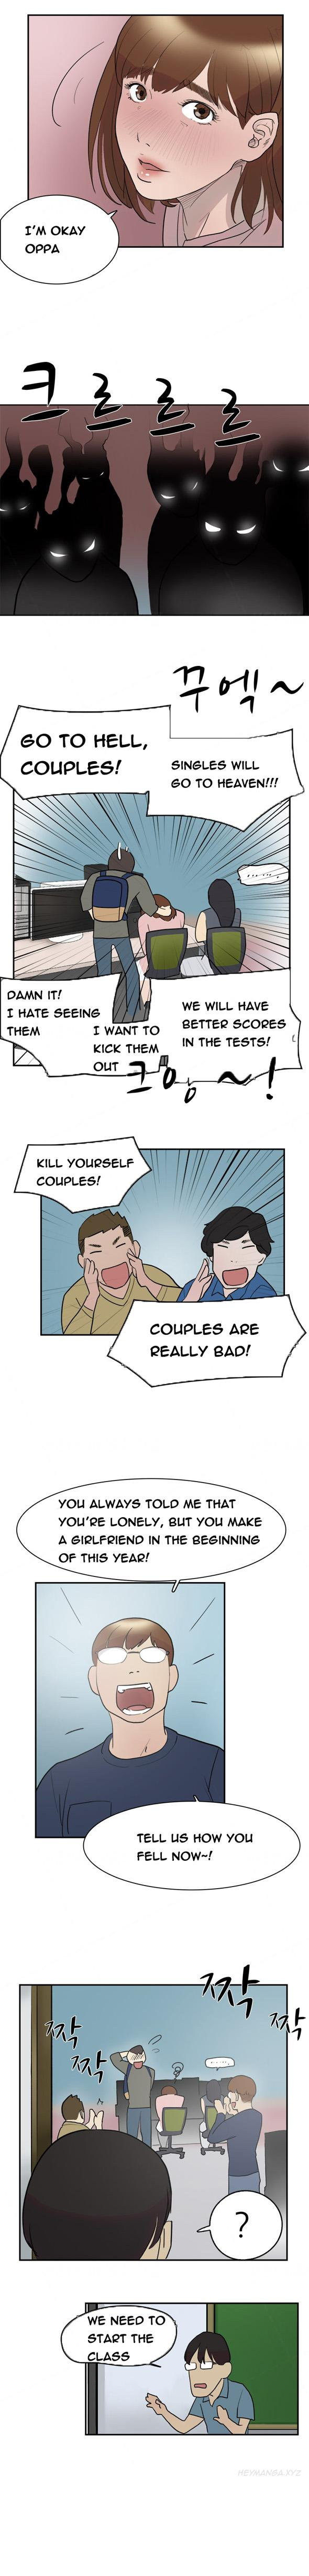 Double Date Ch.1-12 148